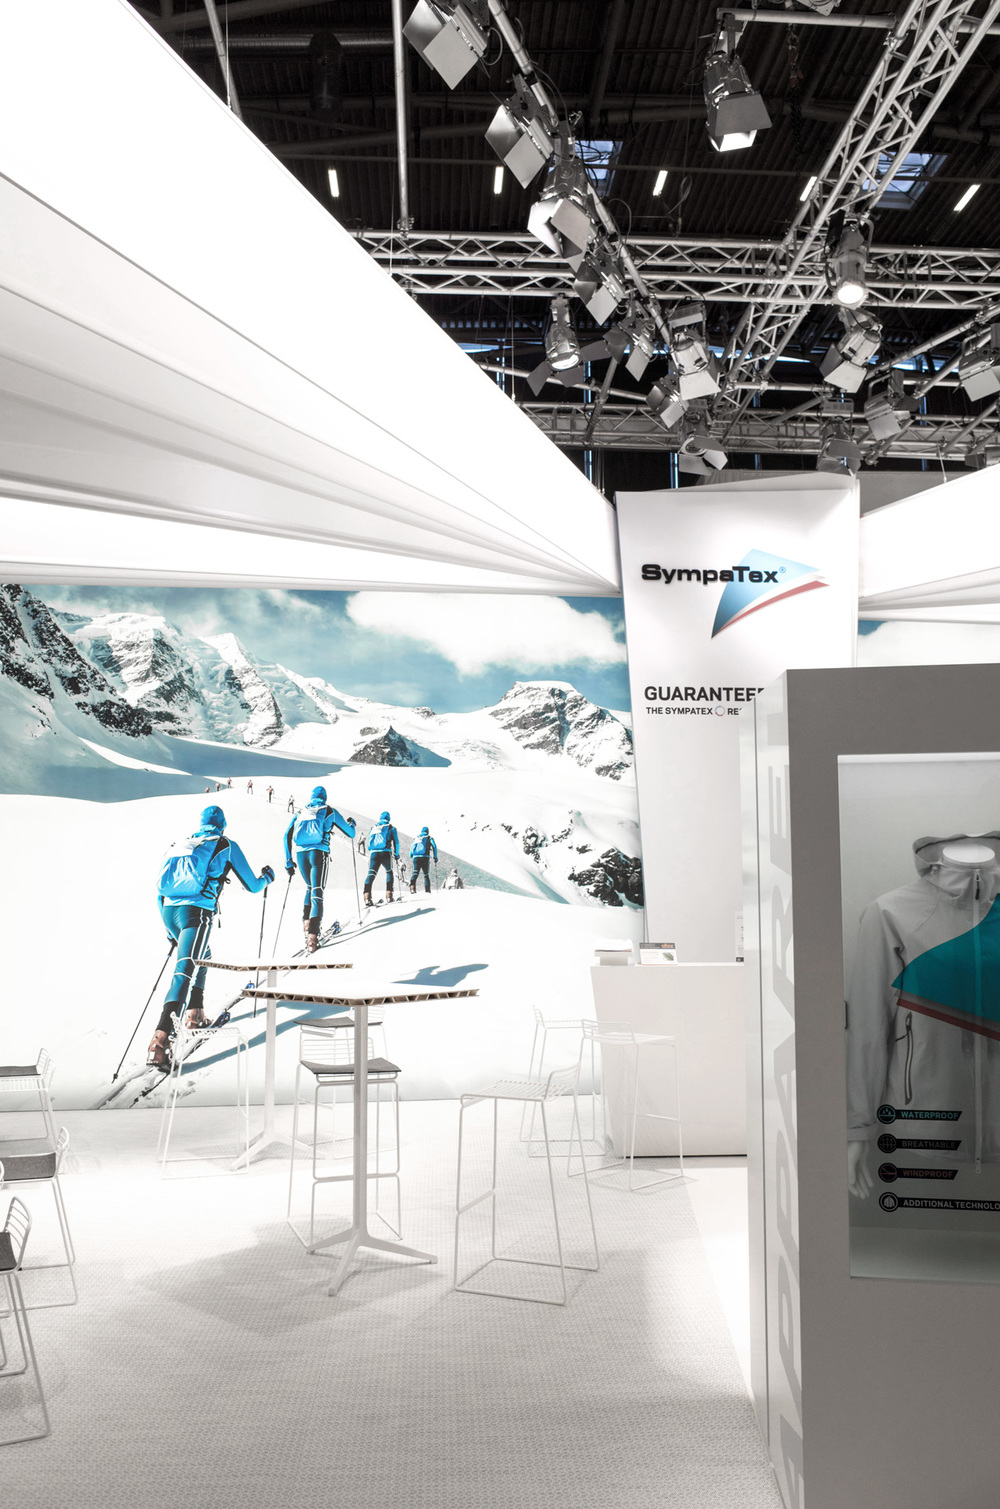 003-sympatex-ispo-trade-fair-design-buero-philipp-moeller-2015.jpg